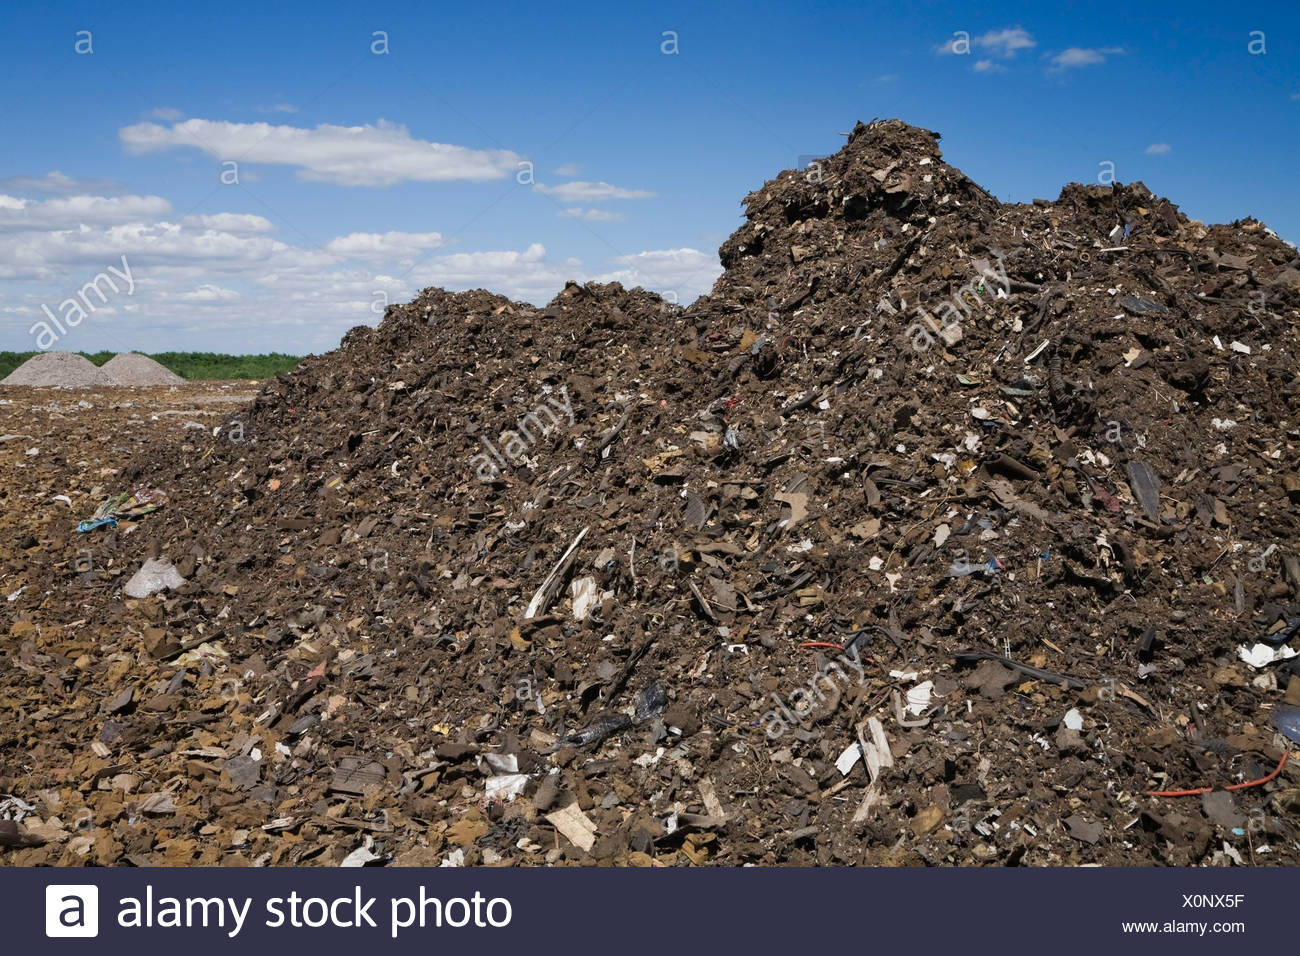 Pile of discarded automotive debris at a waste management site, Quebec, Canada - Stock Image